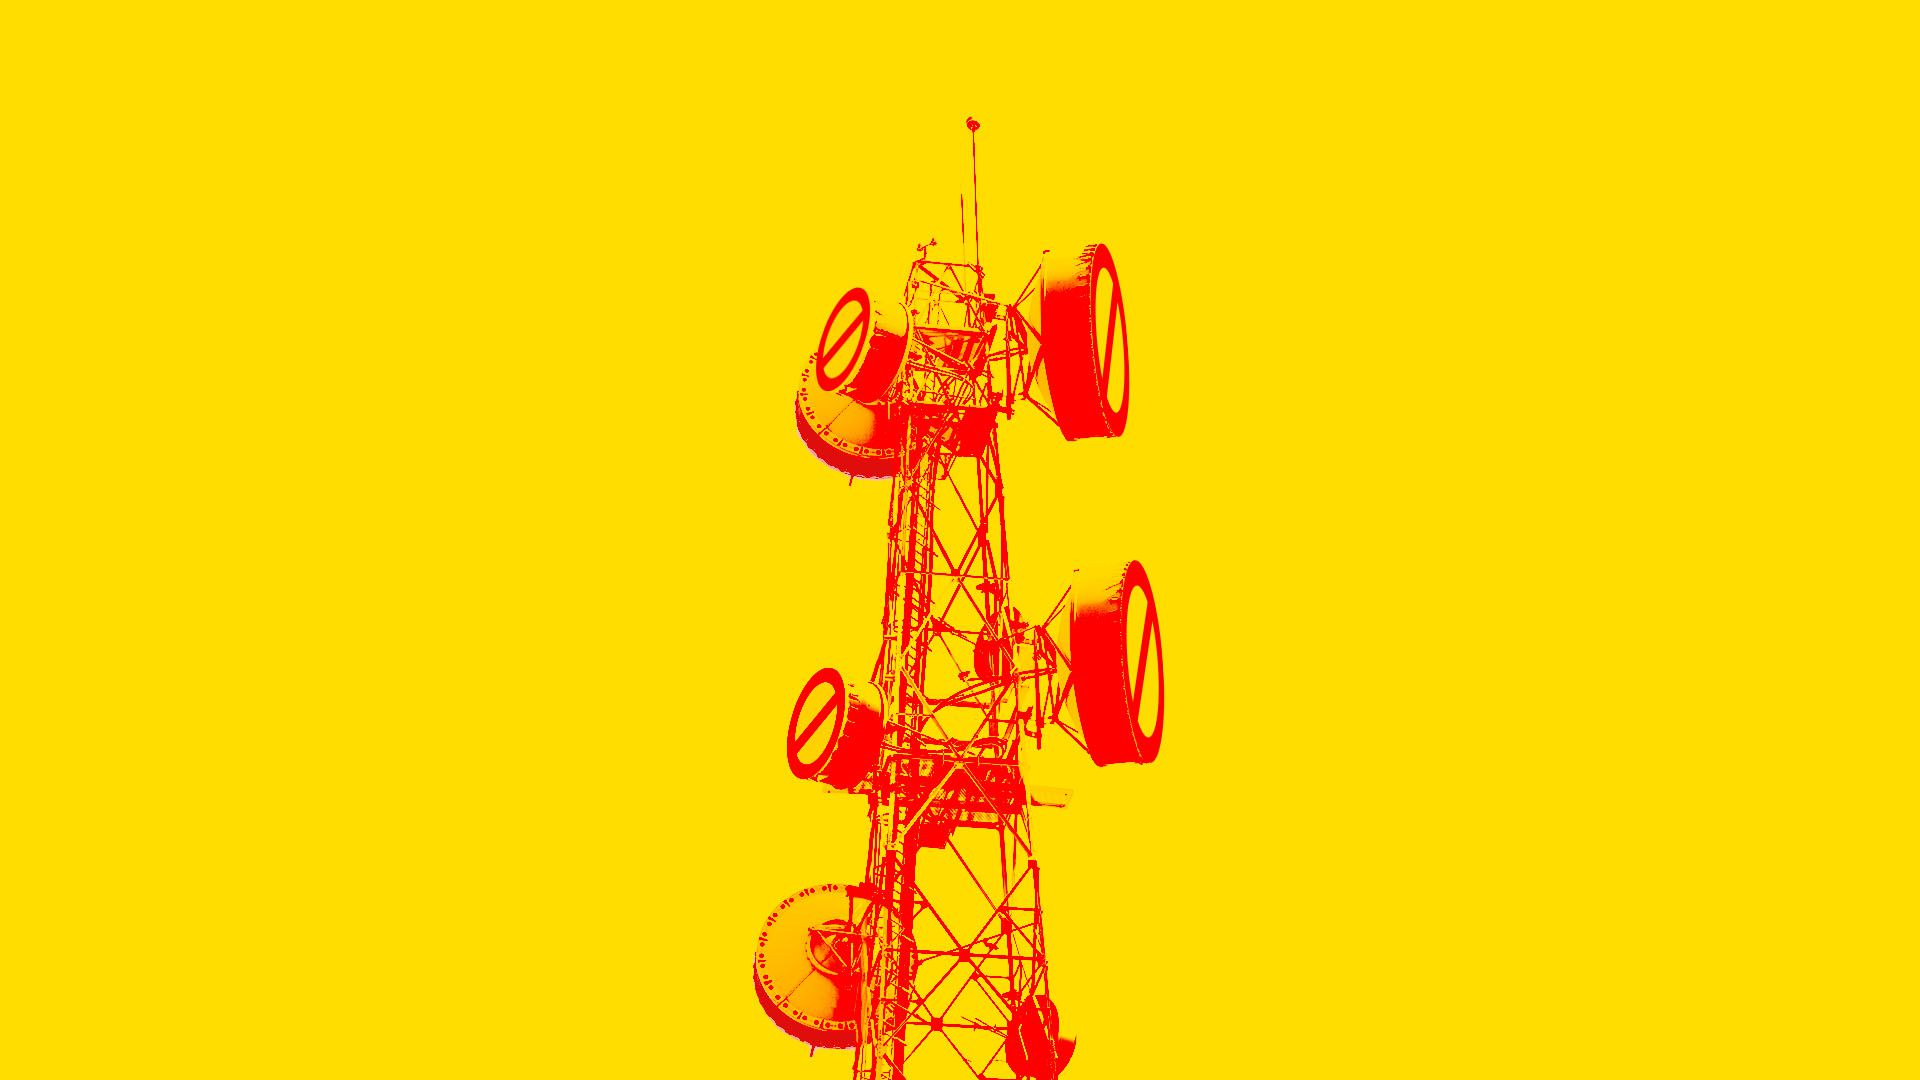 Illustration of a telecommunications tower with the red ban sign over satellite dishes